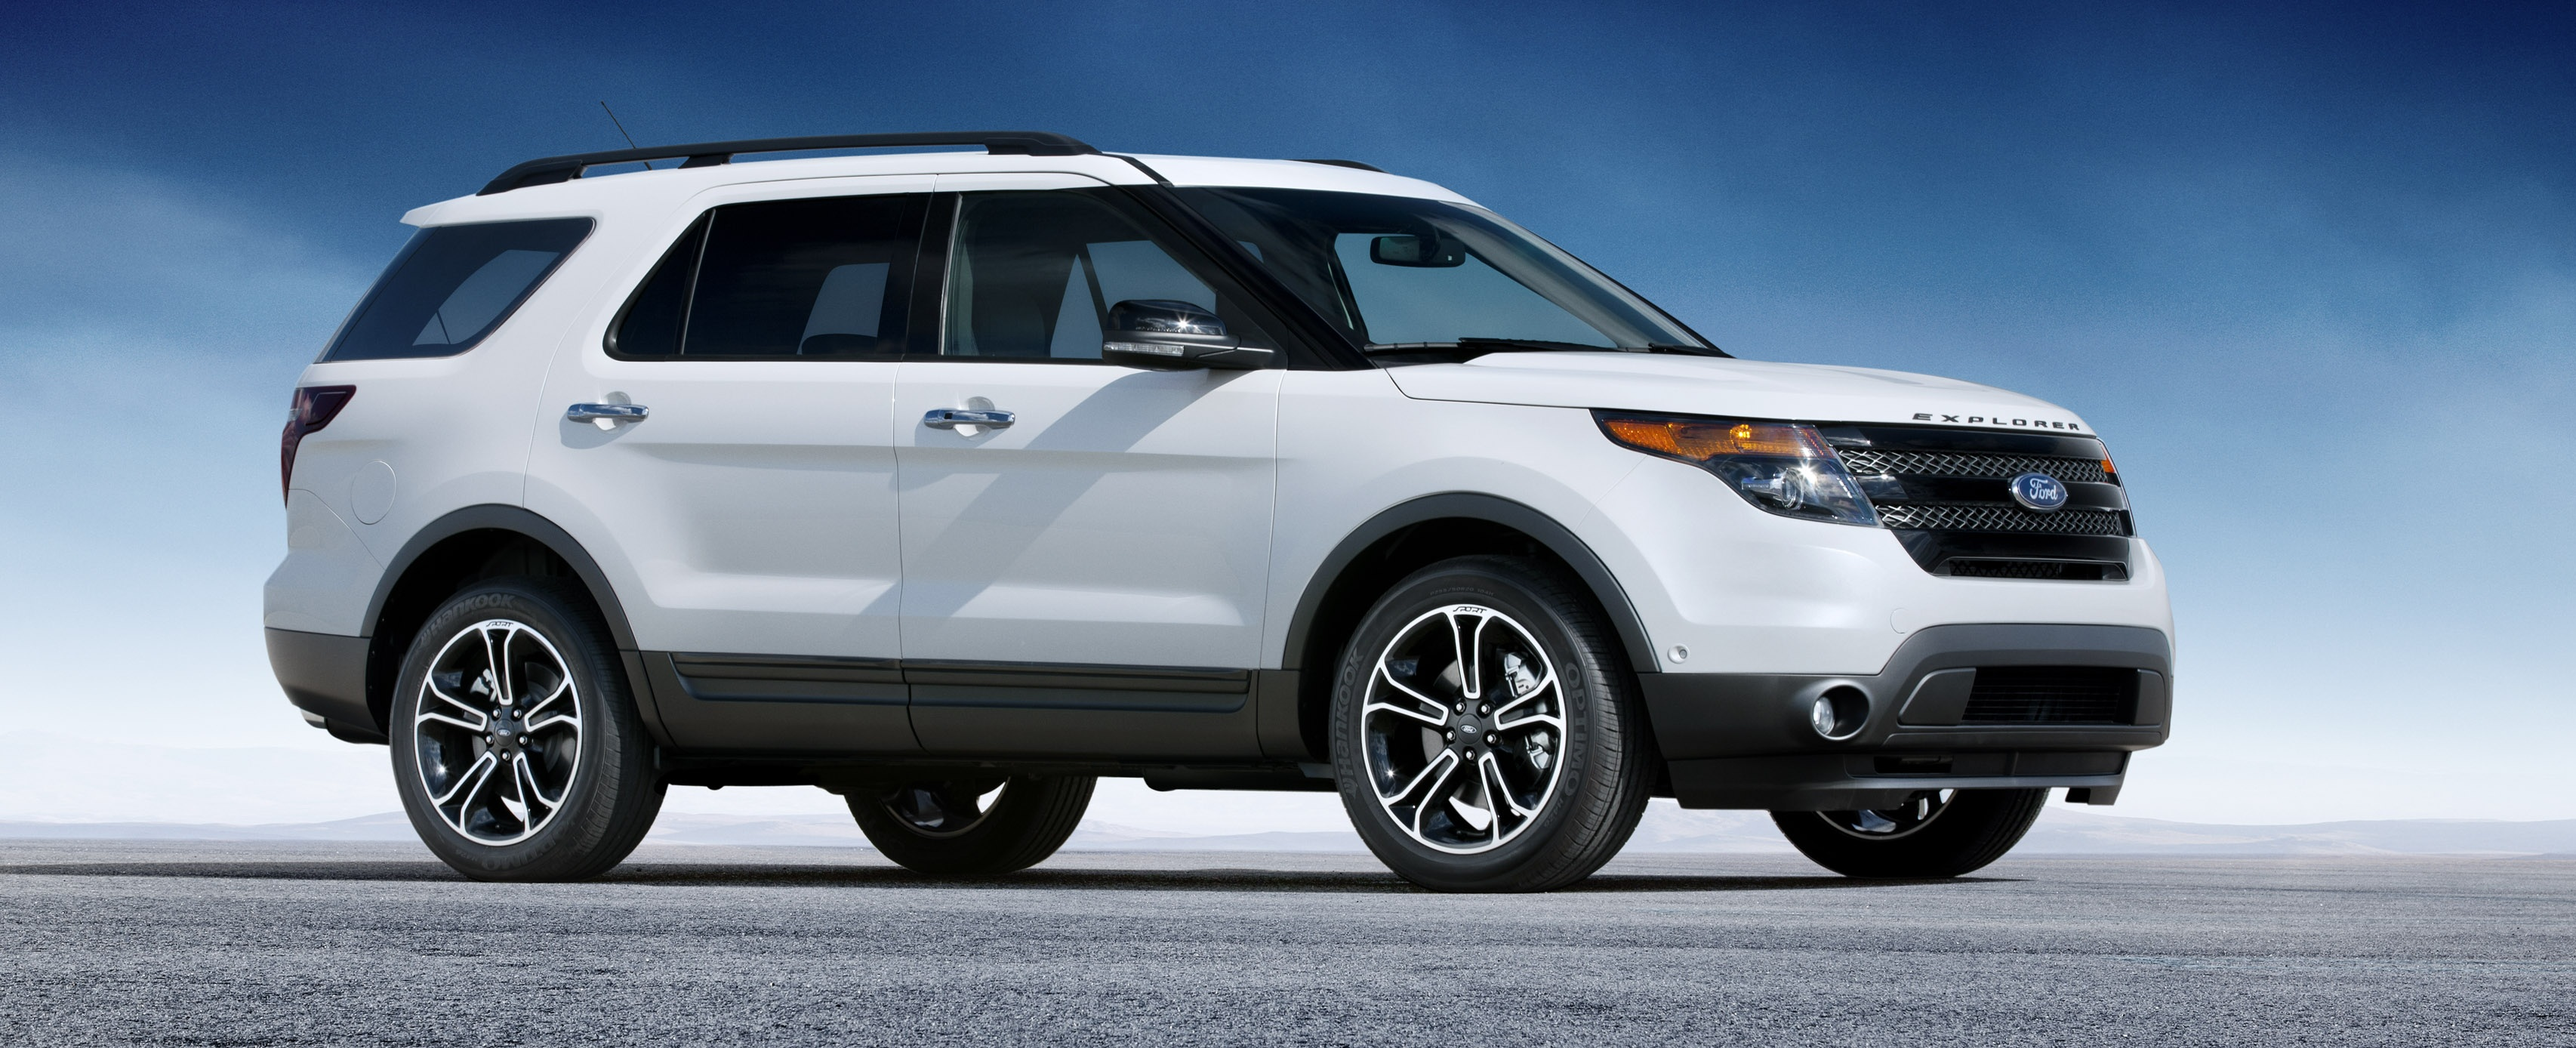 Ford Jeep 2013 photo - 1